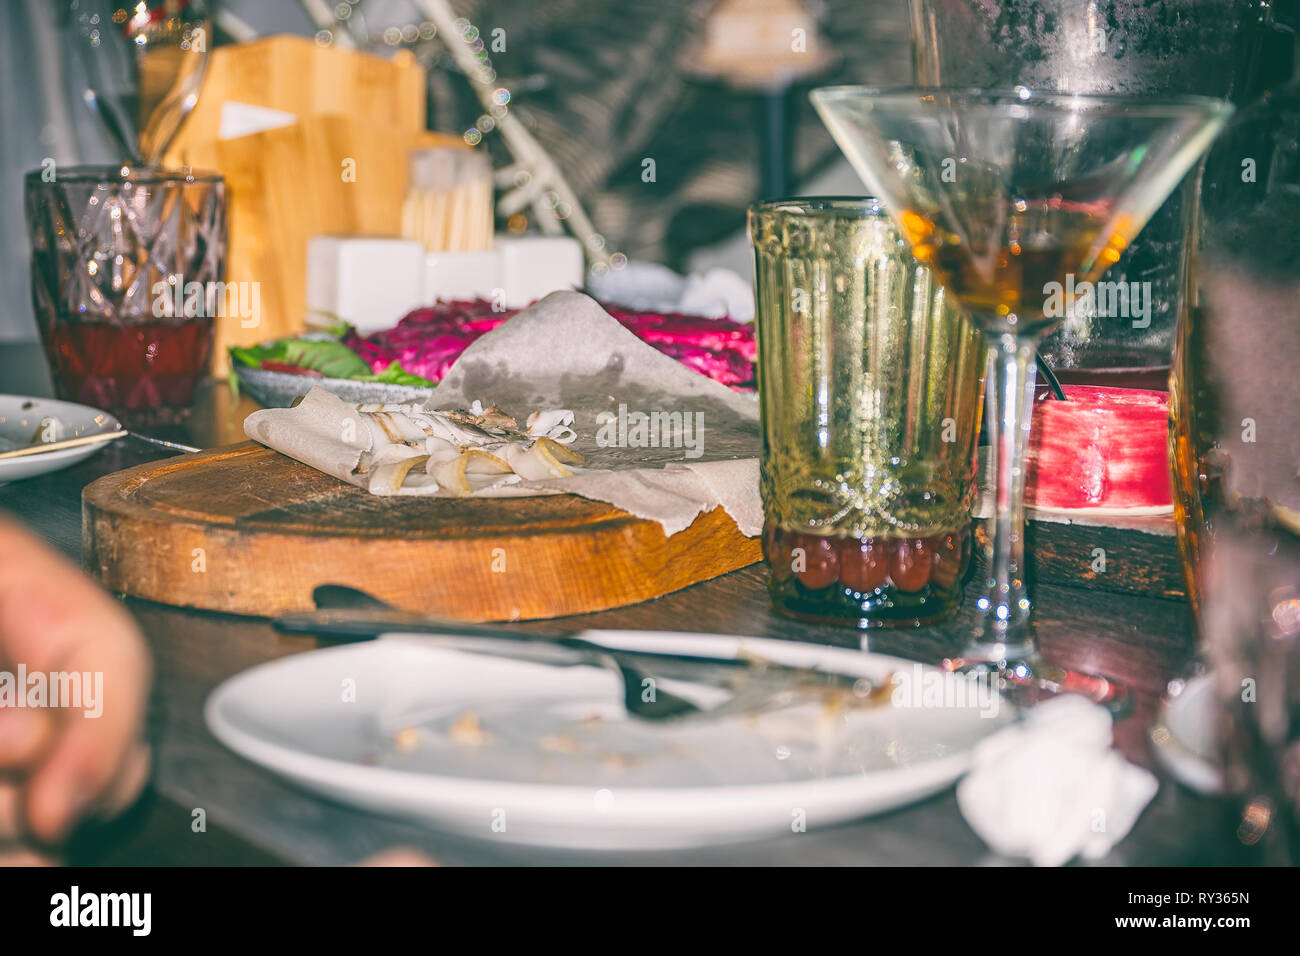 Untidy dirty table after party. Leftover food, empty glasses, wrinkled napkins - Stock Image